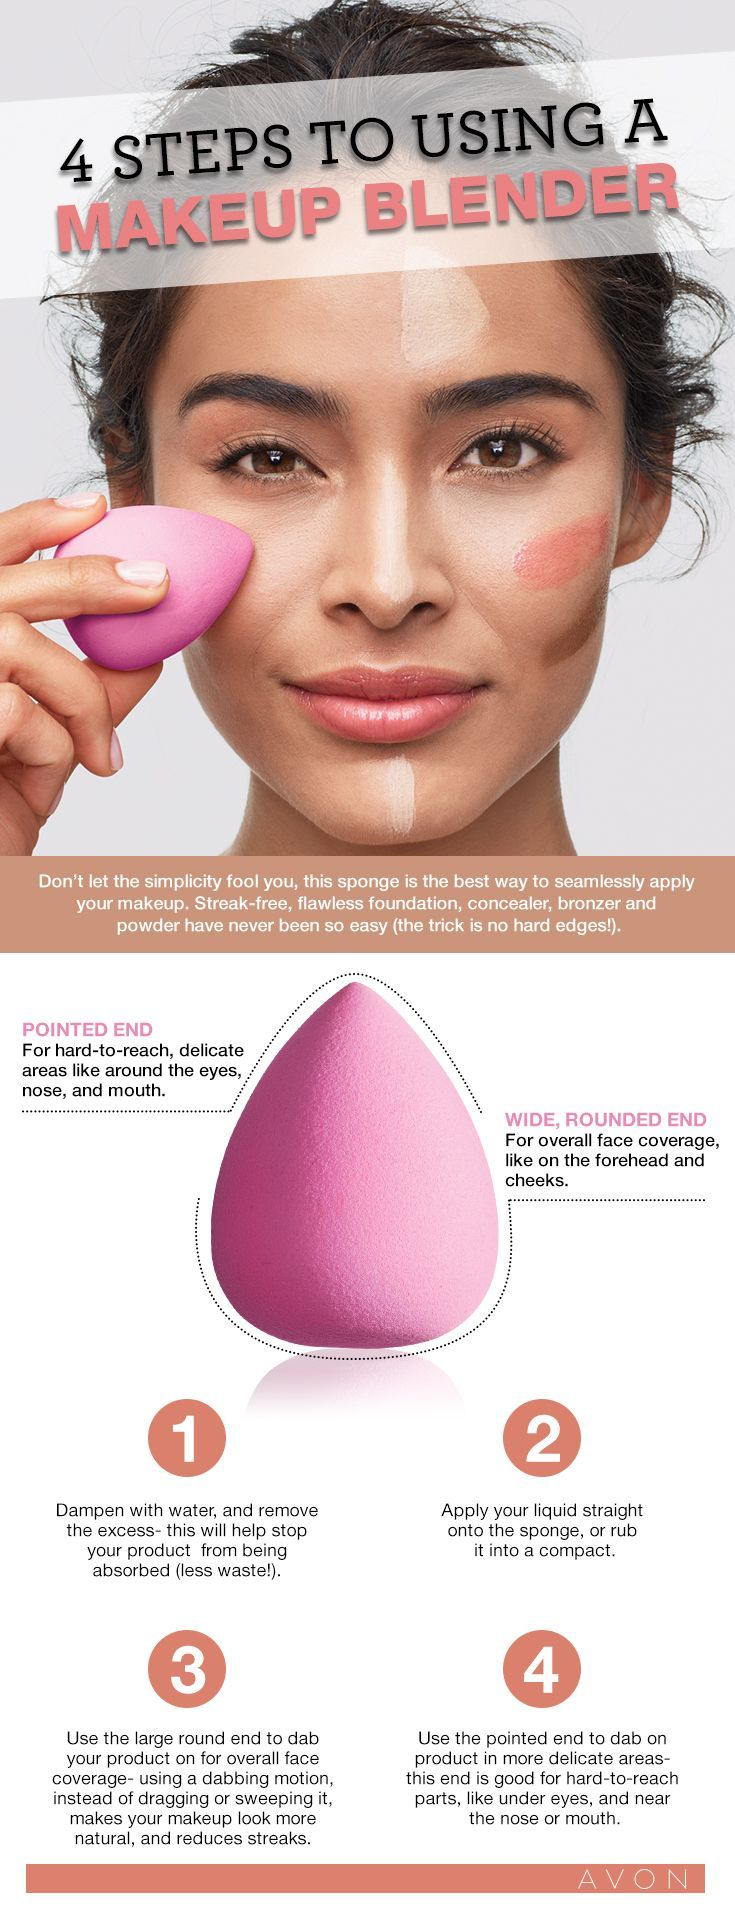 Not sure how to use a makeup blending sponge? Here's the lowdown #AvonCanada